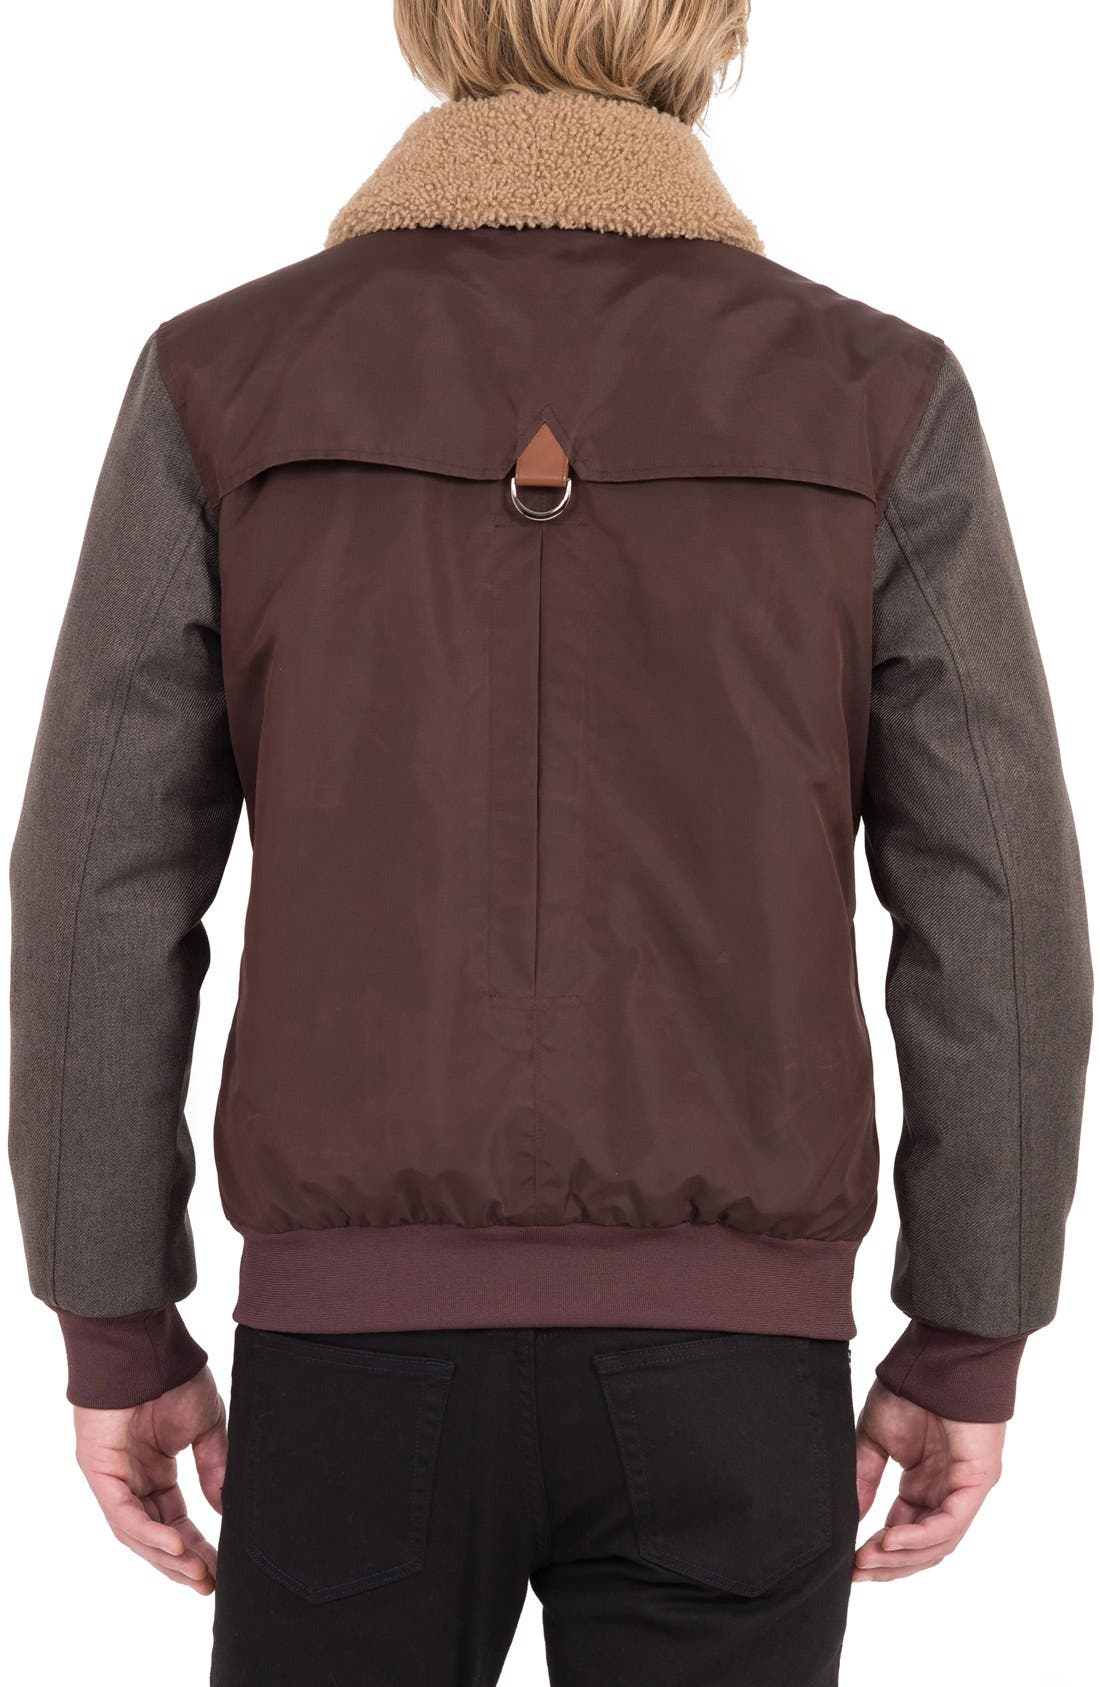 Waxed Nylon Jacket with Faux Shearling Collar,                             Alternate thumbnail 2, color,                             Burgundy/ Acorn